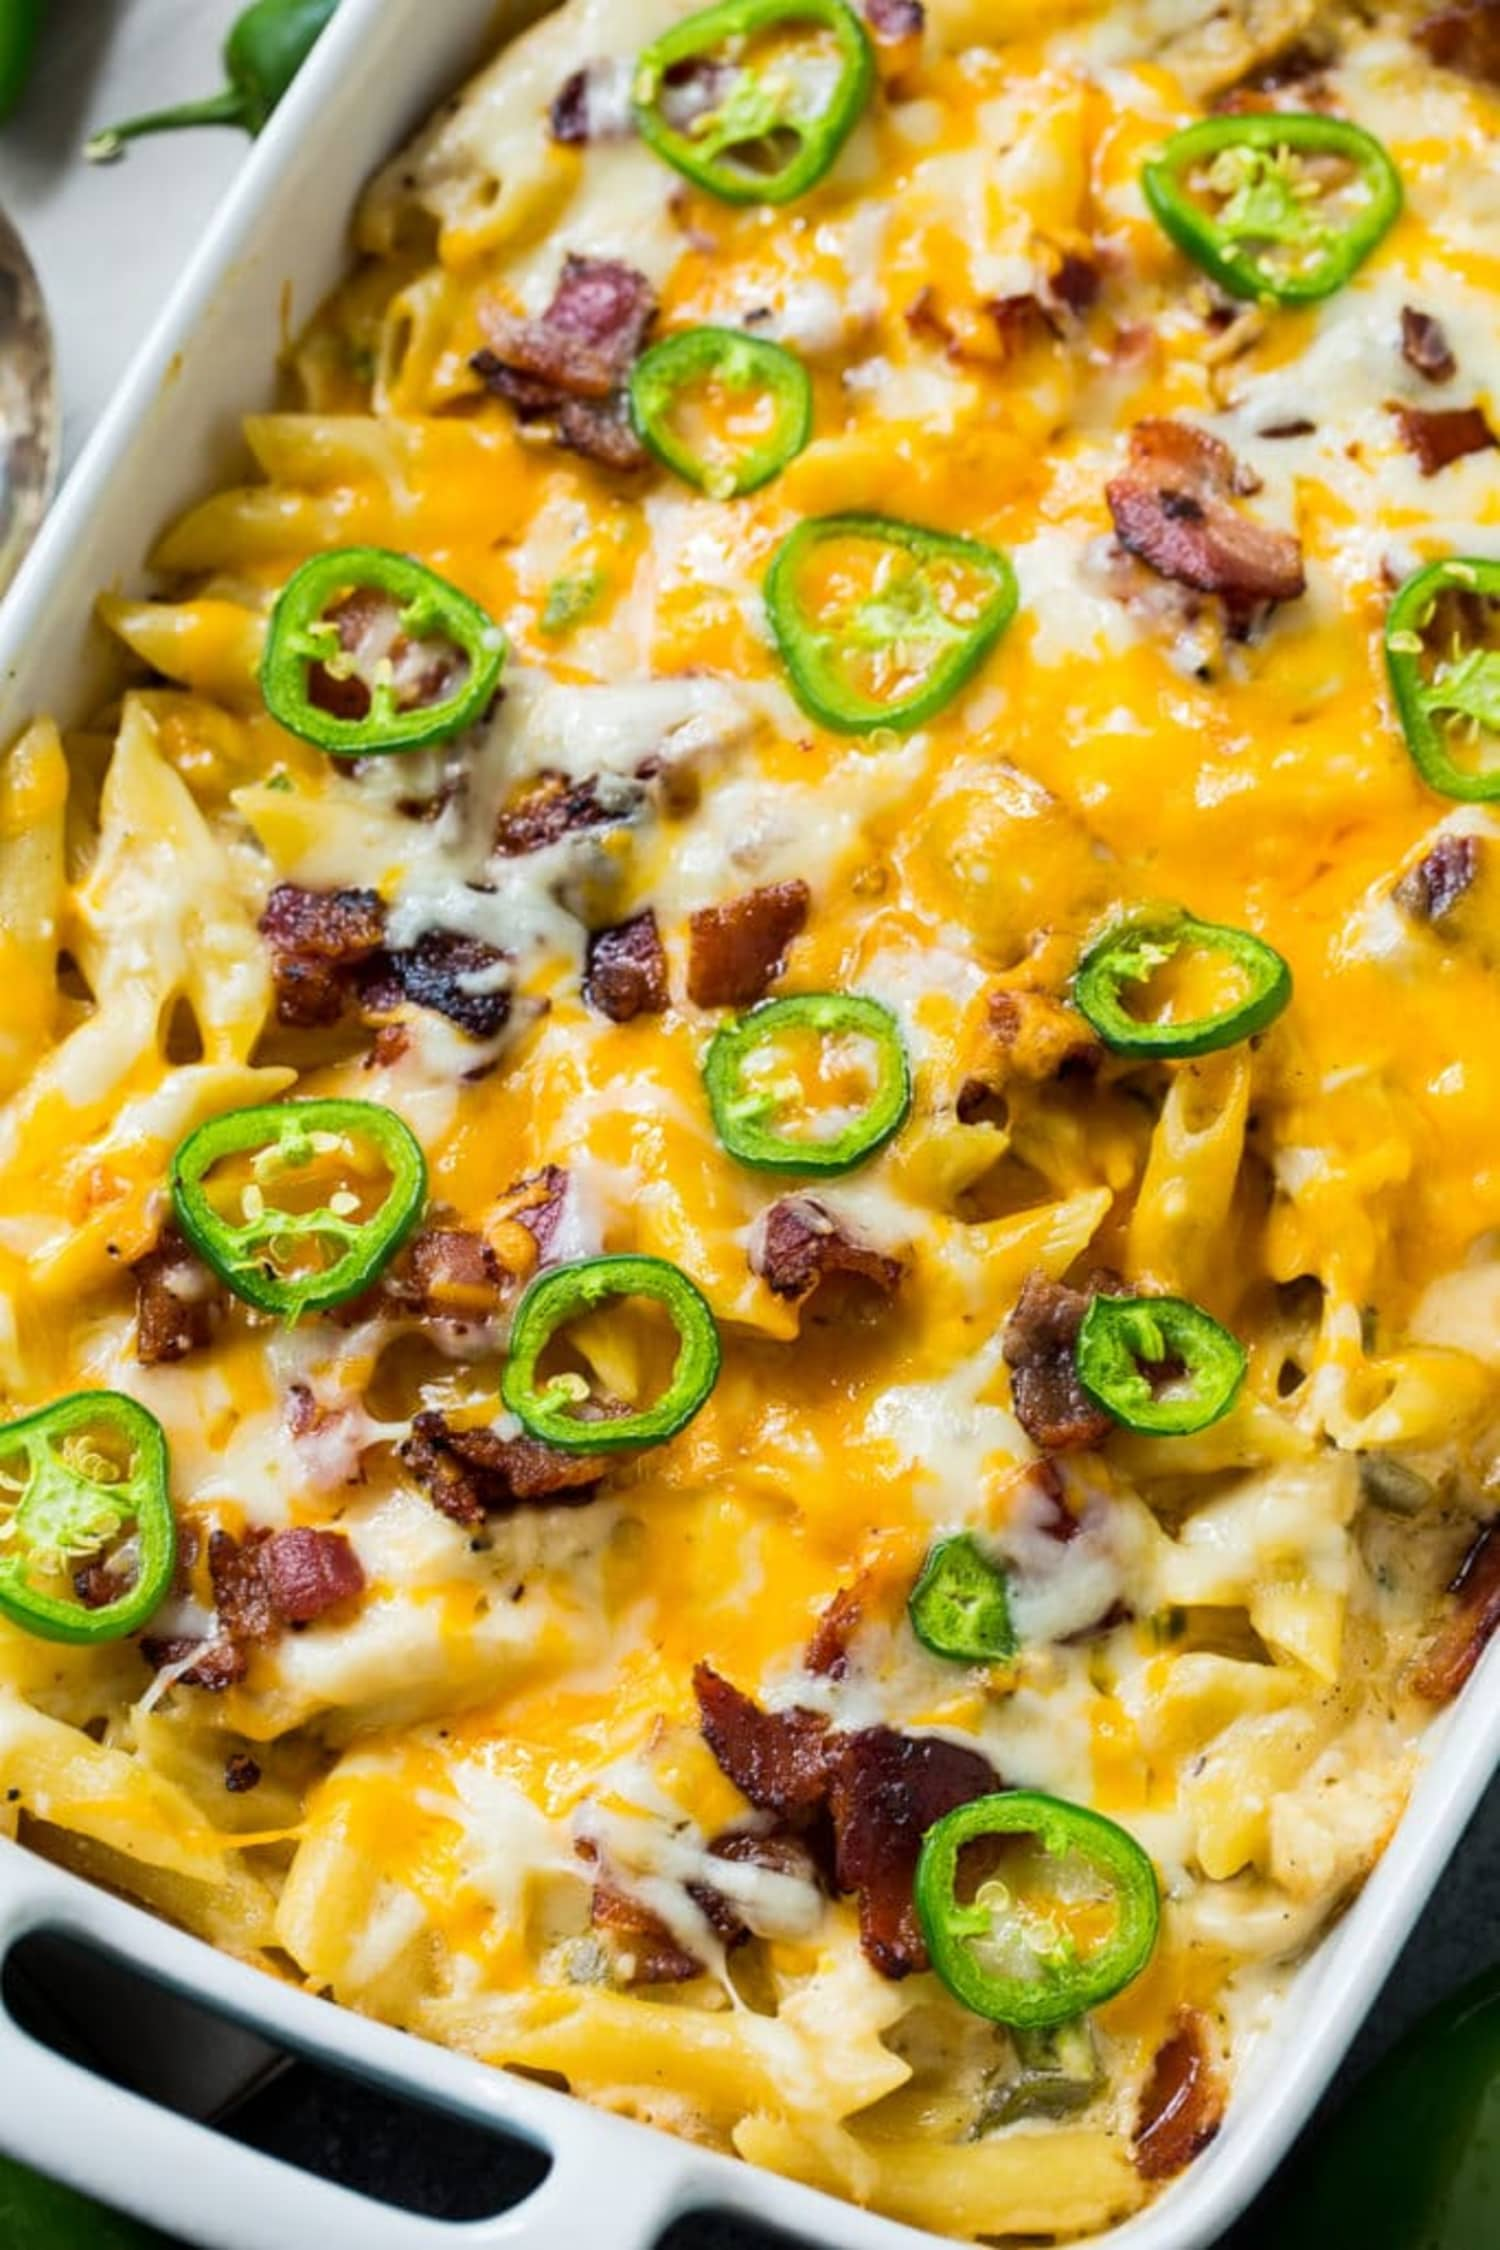 Jalapeño Popper Casserole Is the Perfect Hot Dish